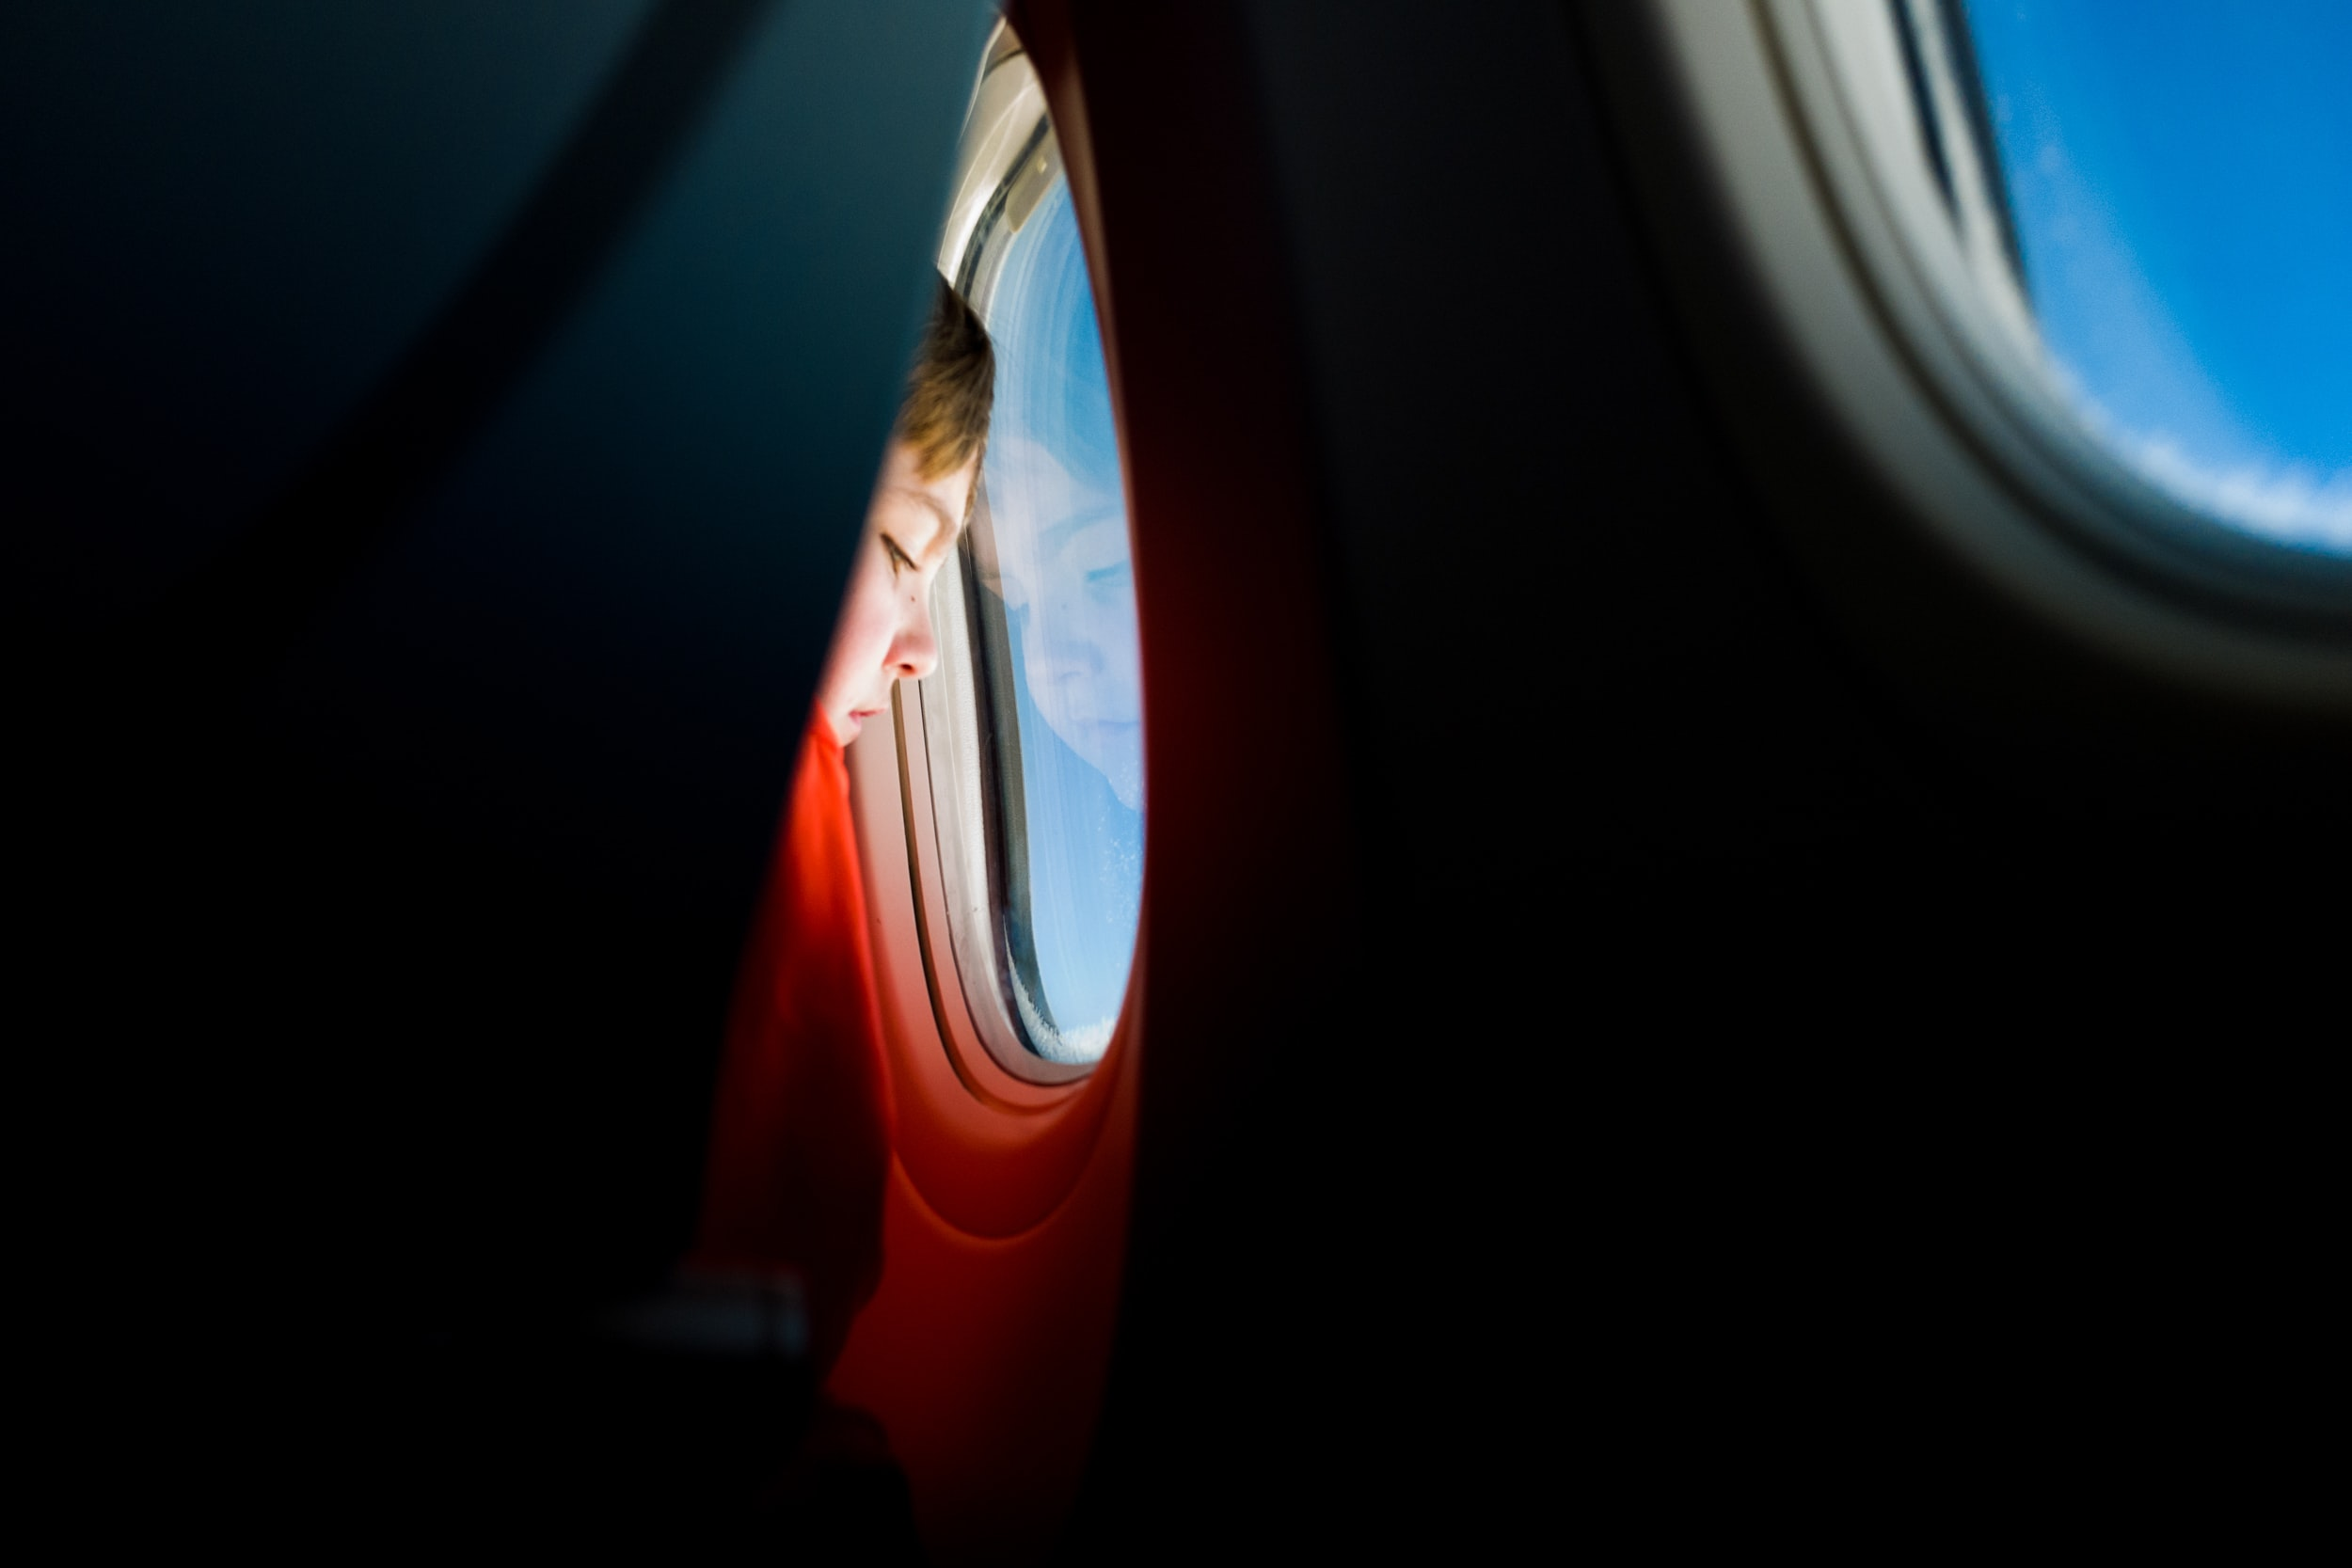 person looking at the window of an airplane